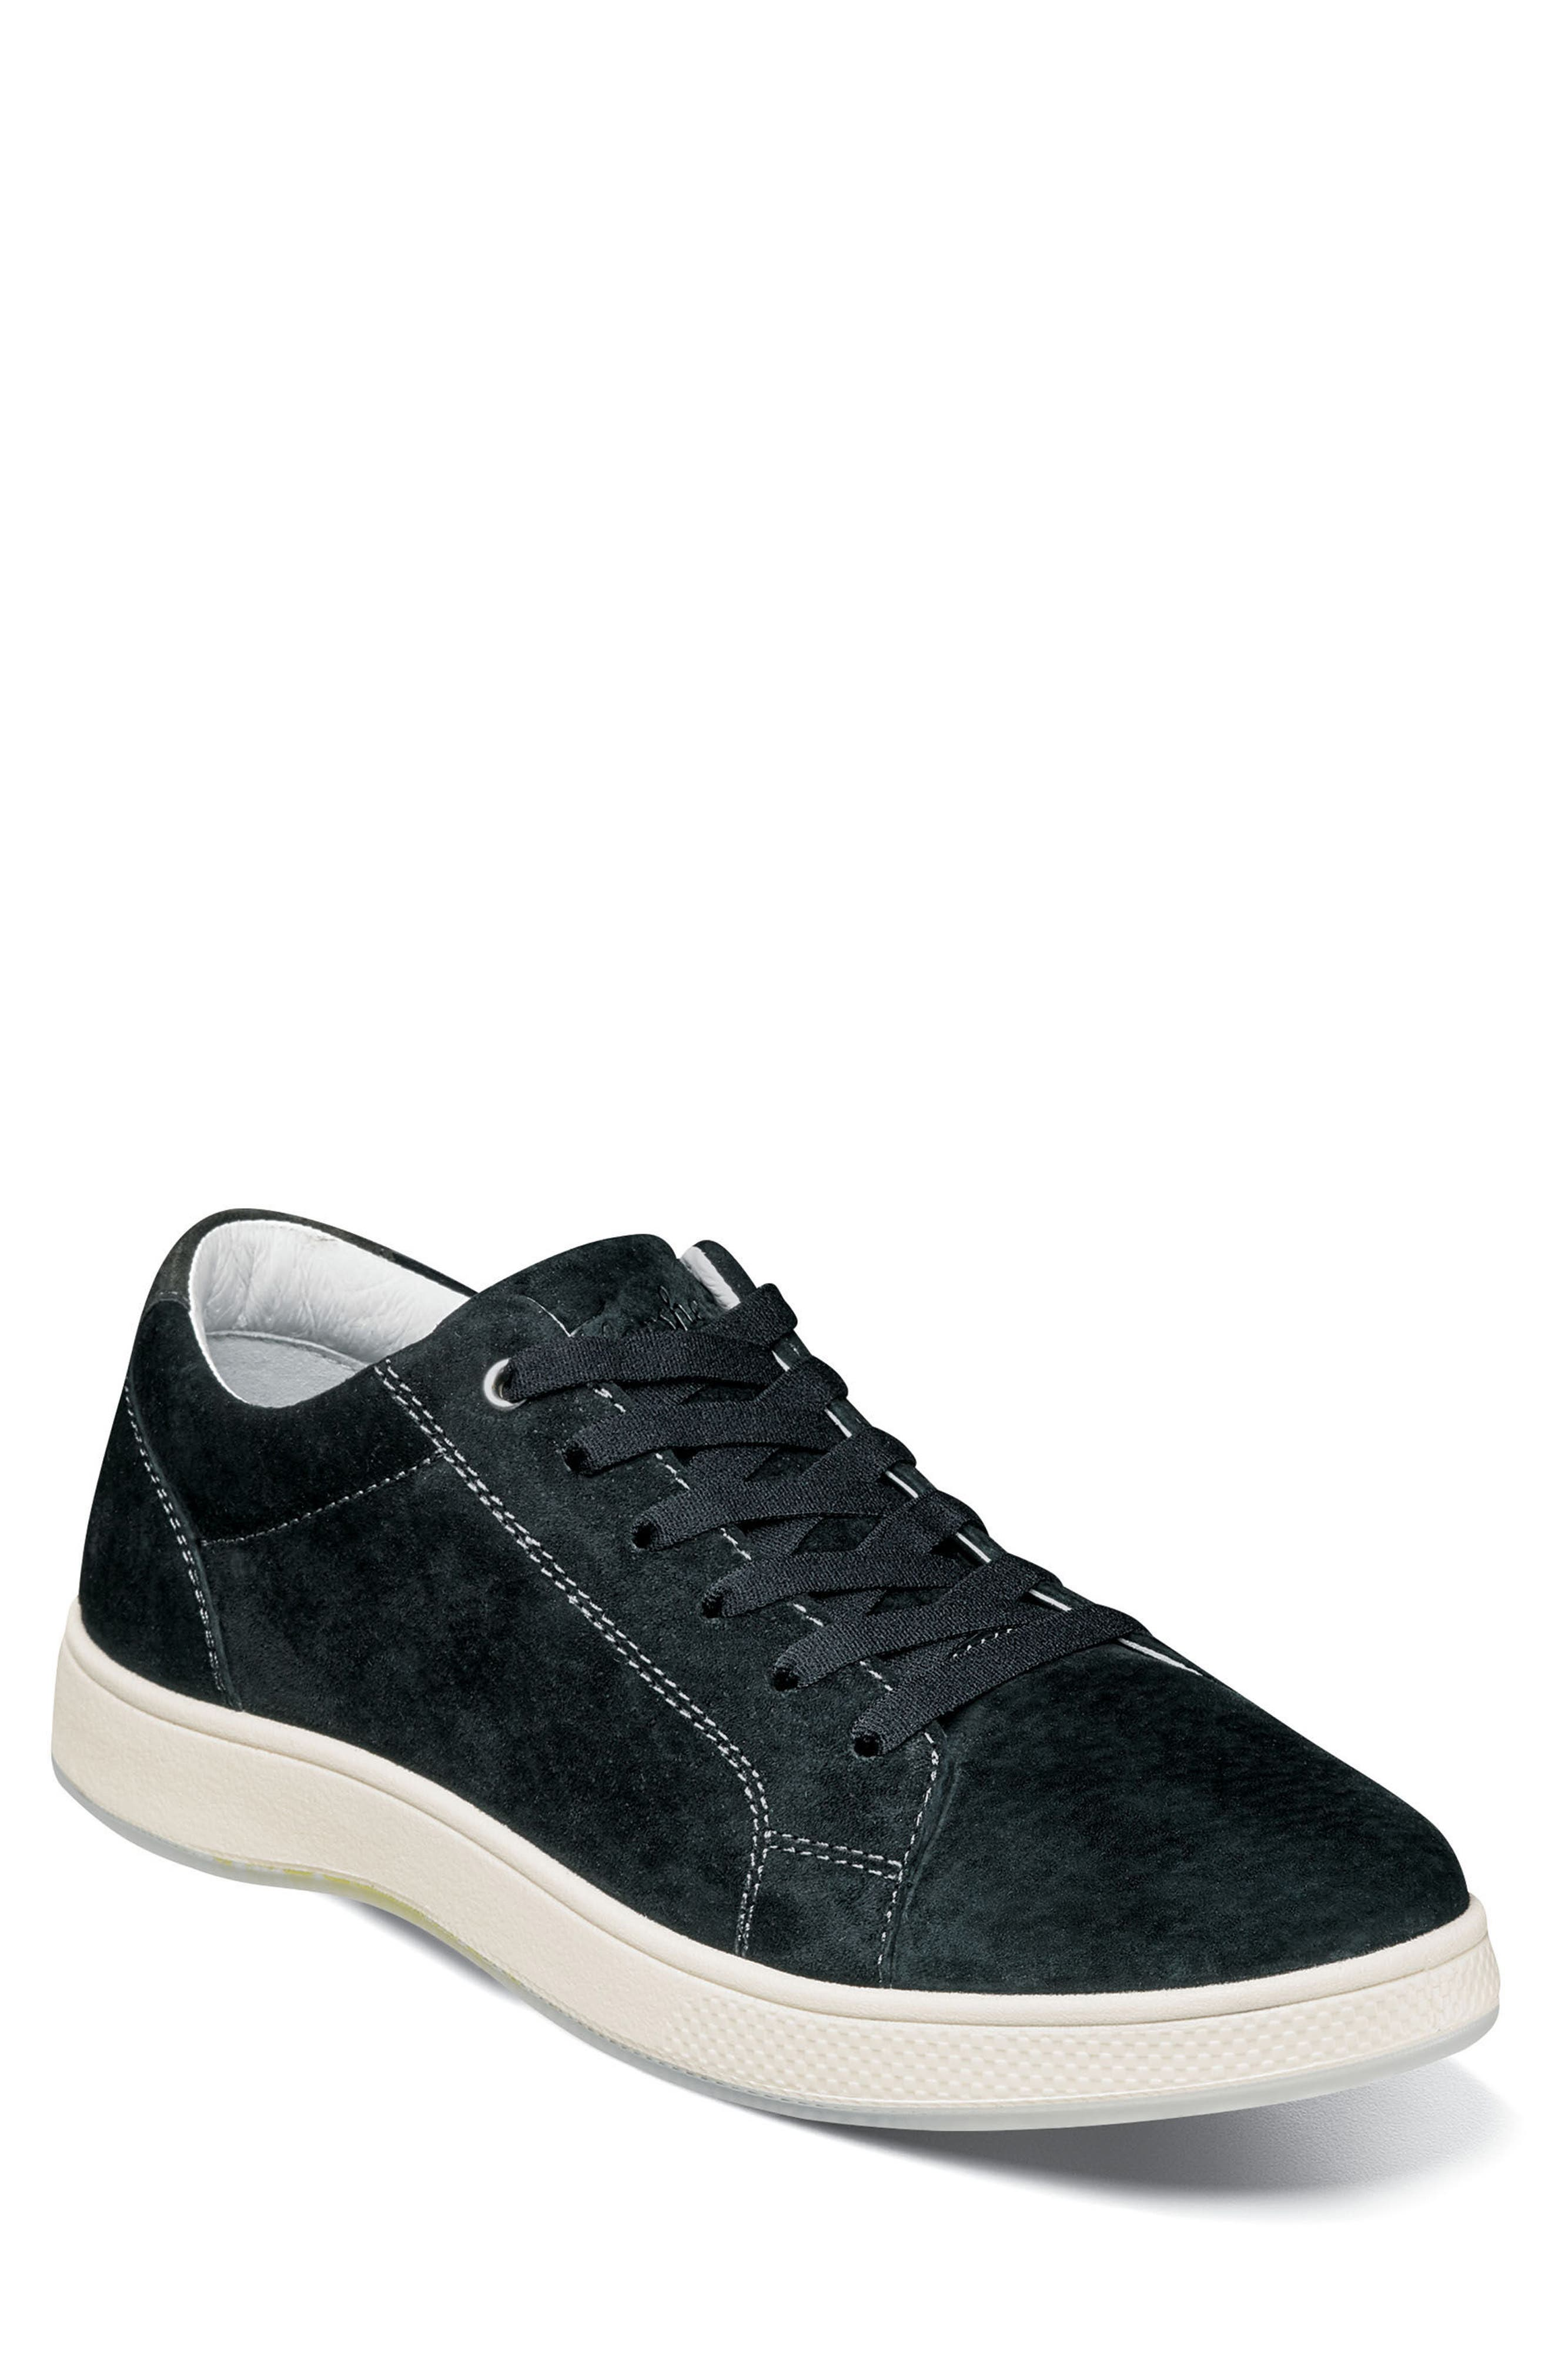 Edge Low Top Sneaker,                         Main,                         color, BLACK NUBUCK